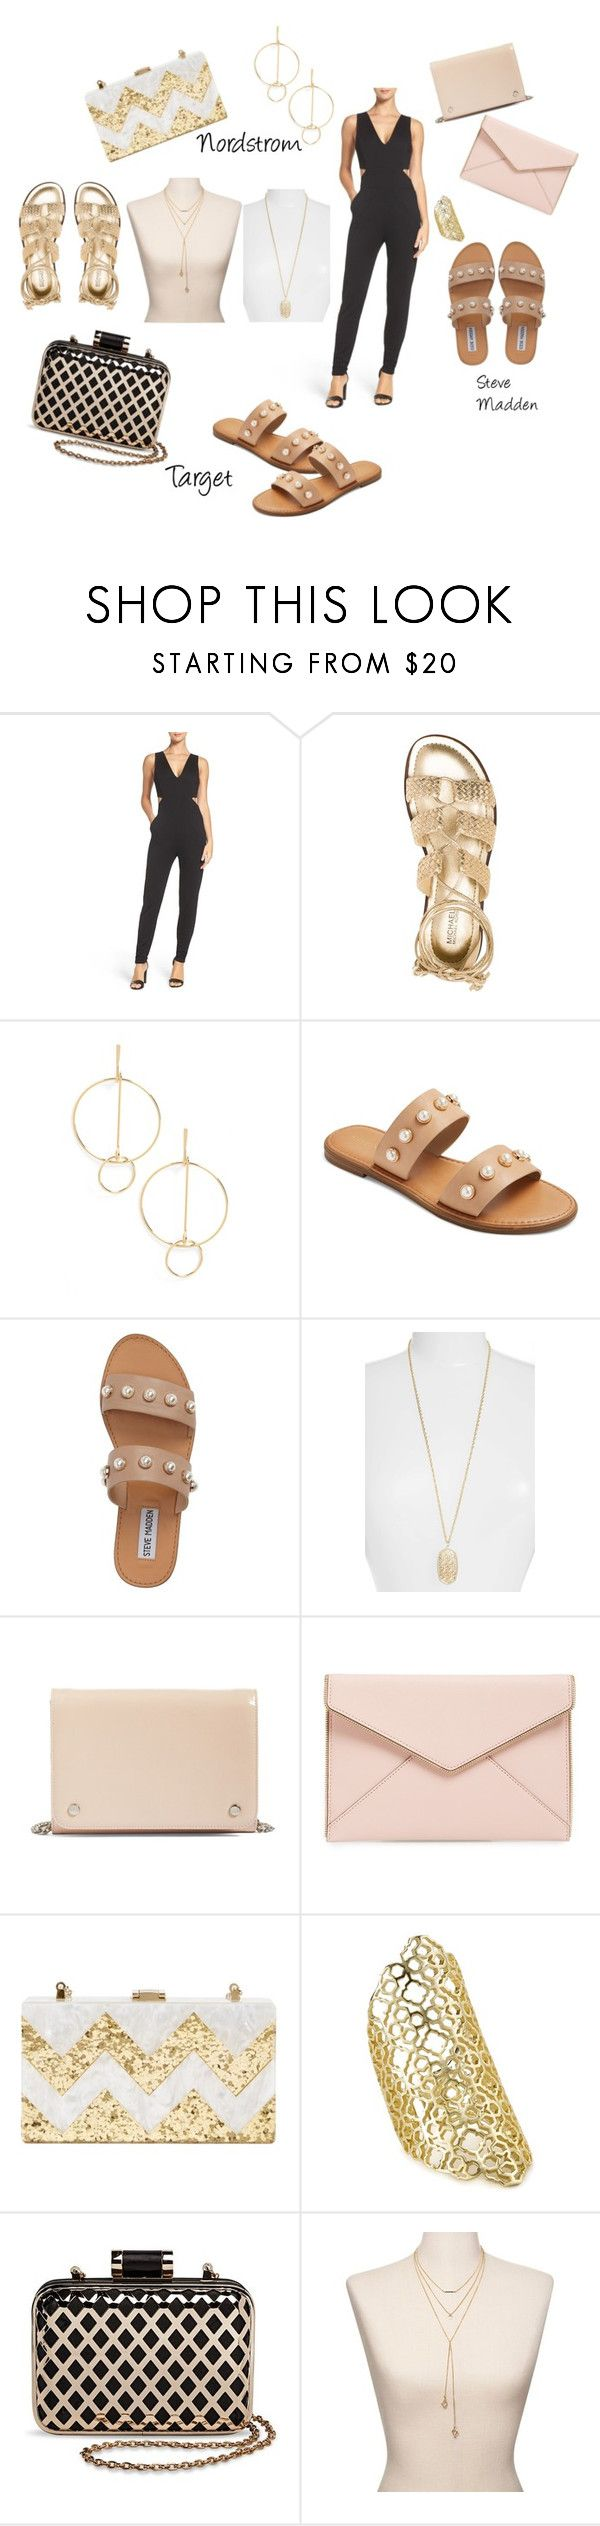 """""""Summer night out"""" by jennhattan on Polyvore featuring Fraiche By J, Cara, Steve Madden, Kendra Scott, Nordstrom, Rebecca Minkoff and Glint"""